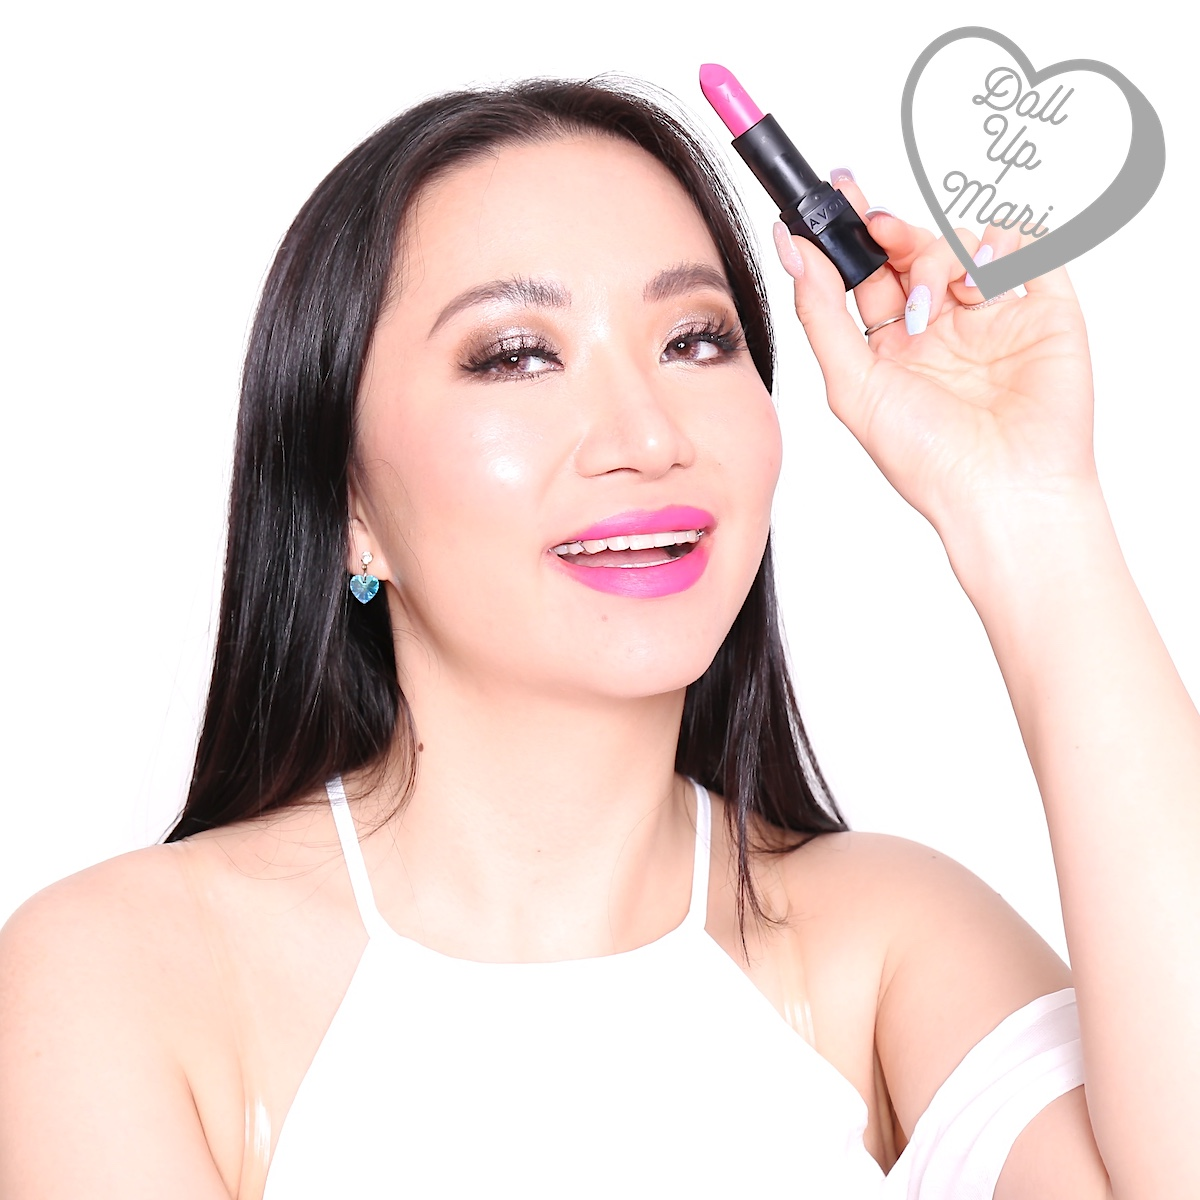 Mari wearing Splendidly Fuchsia shade of AVON Perfectly Matte Lipstick